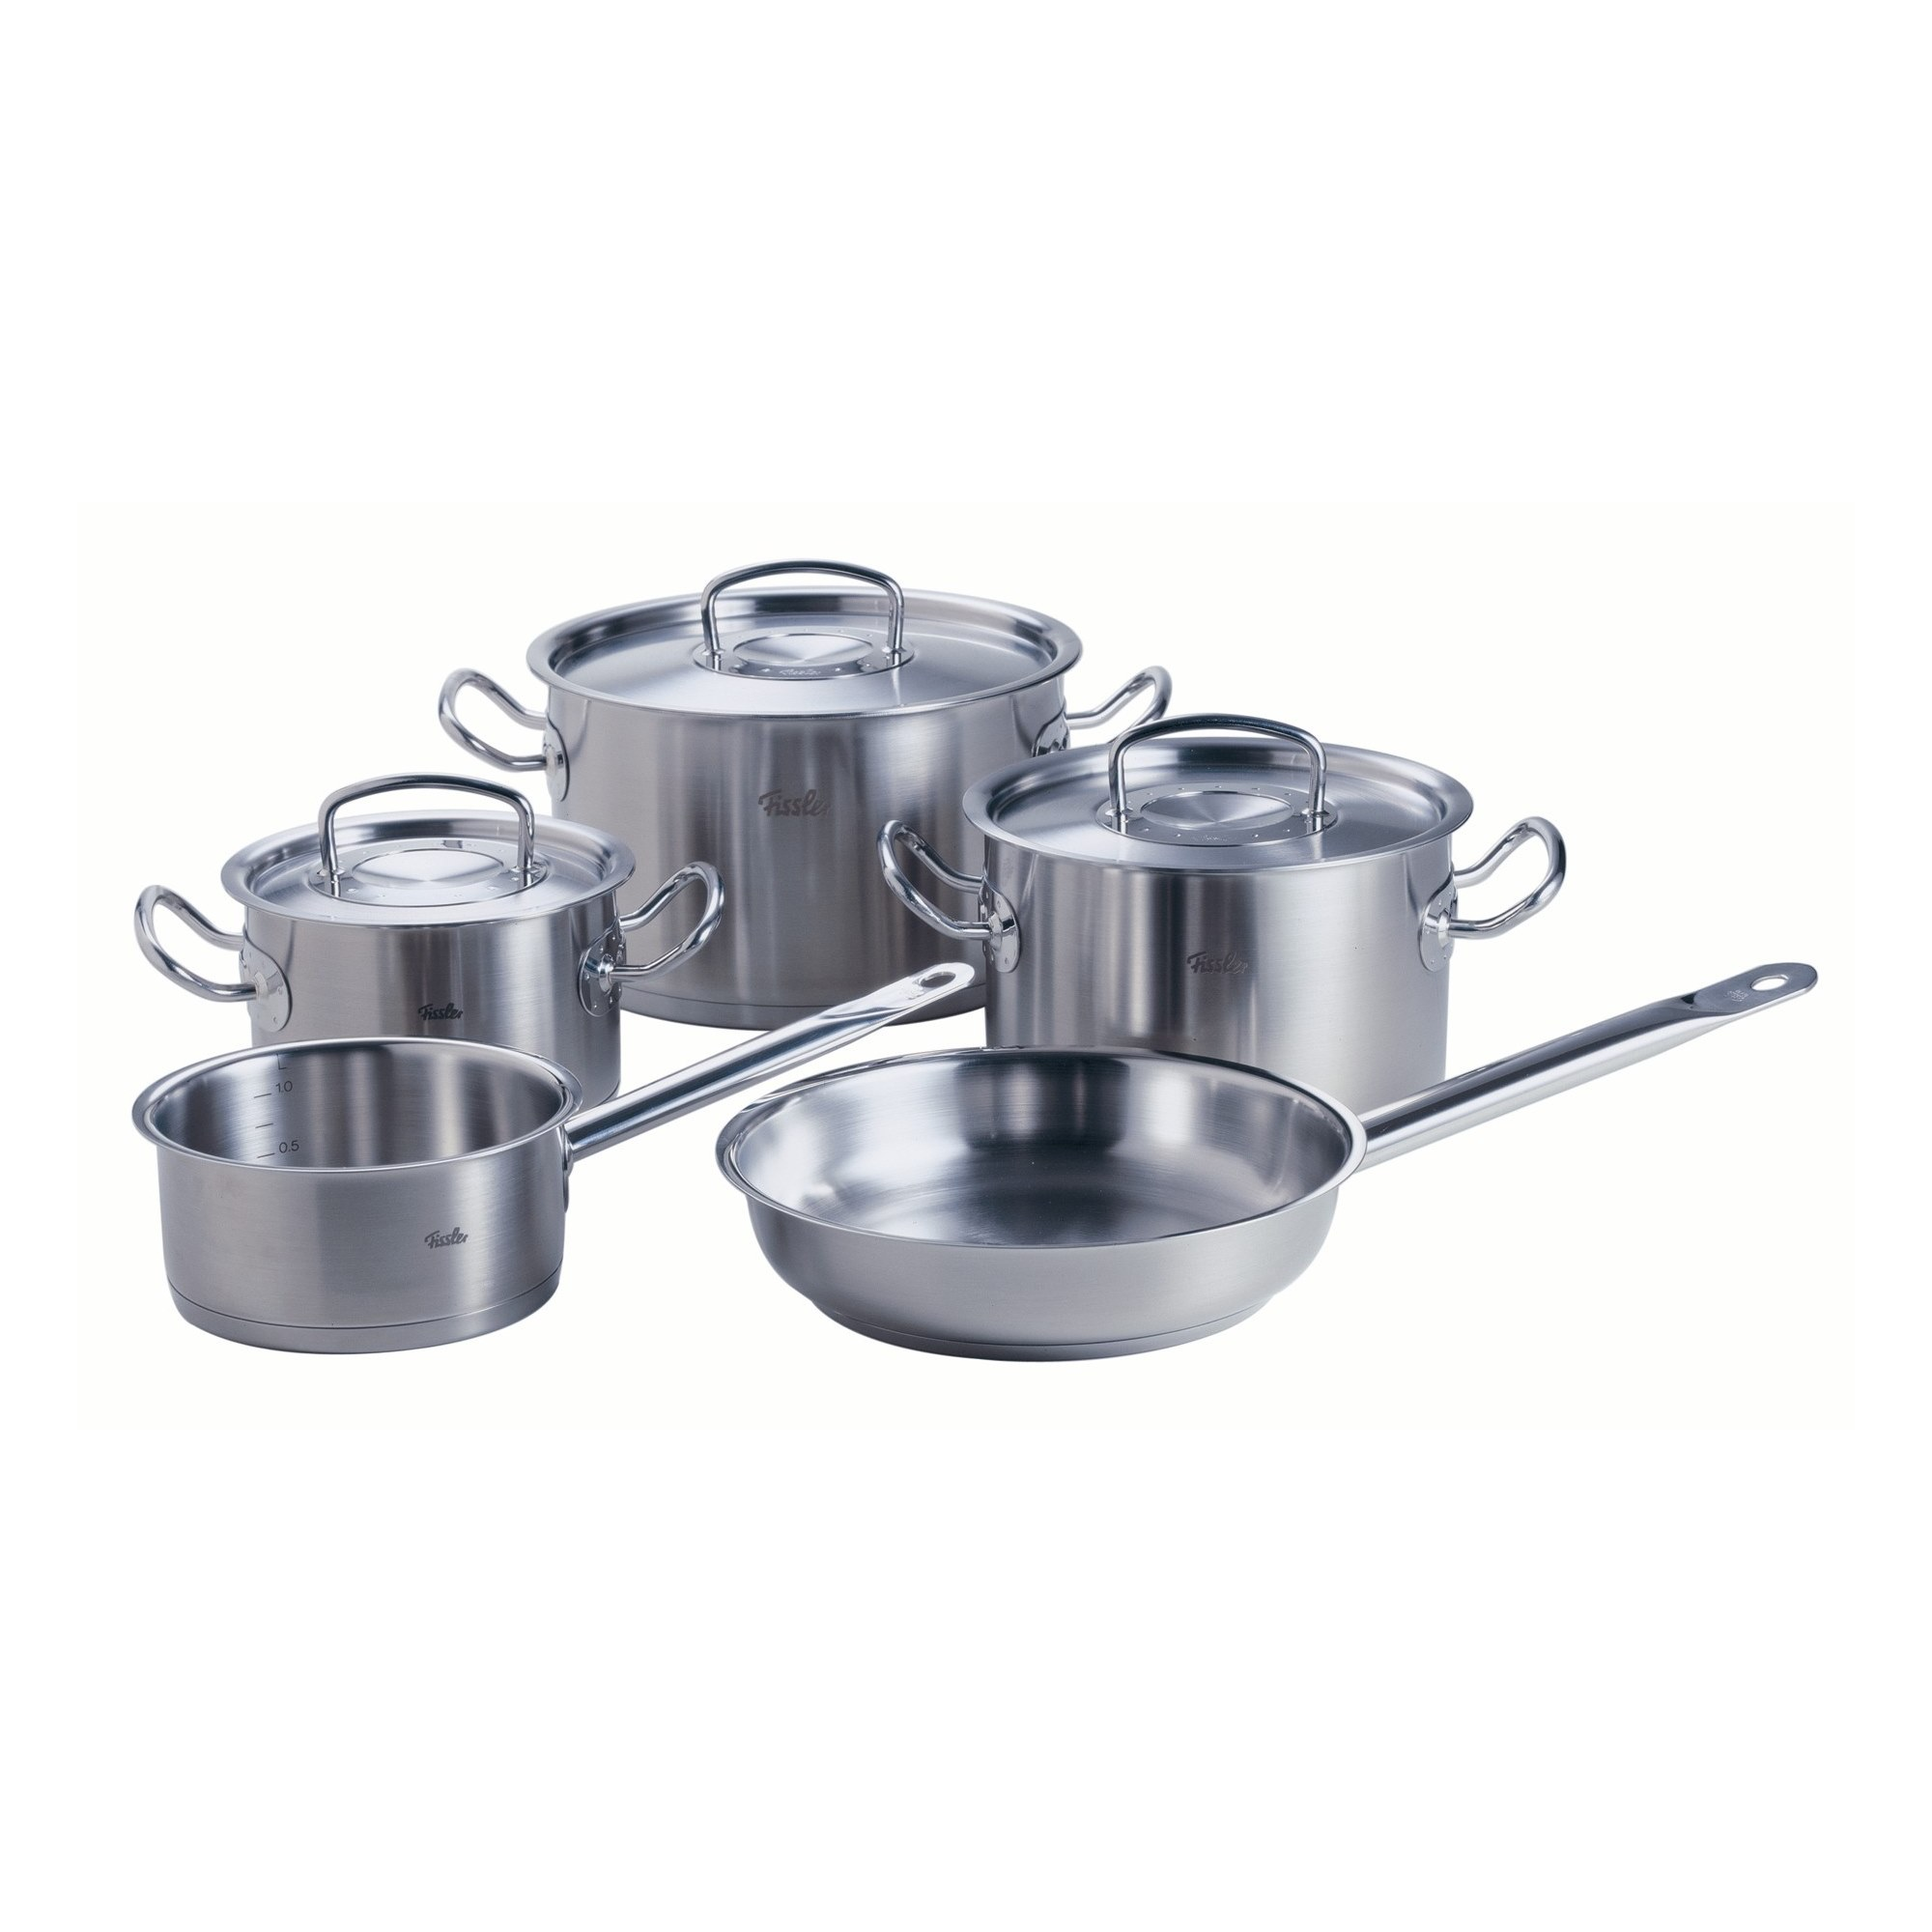 fissler topf set original profi collection 5 teilig mit pfanne ebay. Black Bedroom Furniture Sets. Home Design Ideas